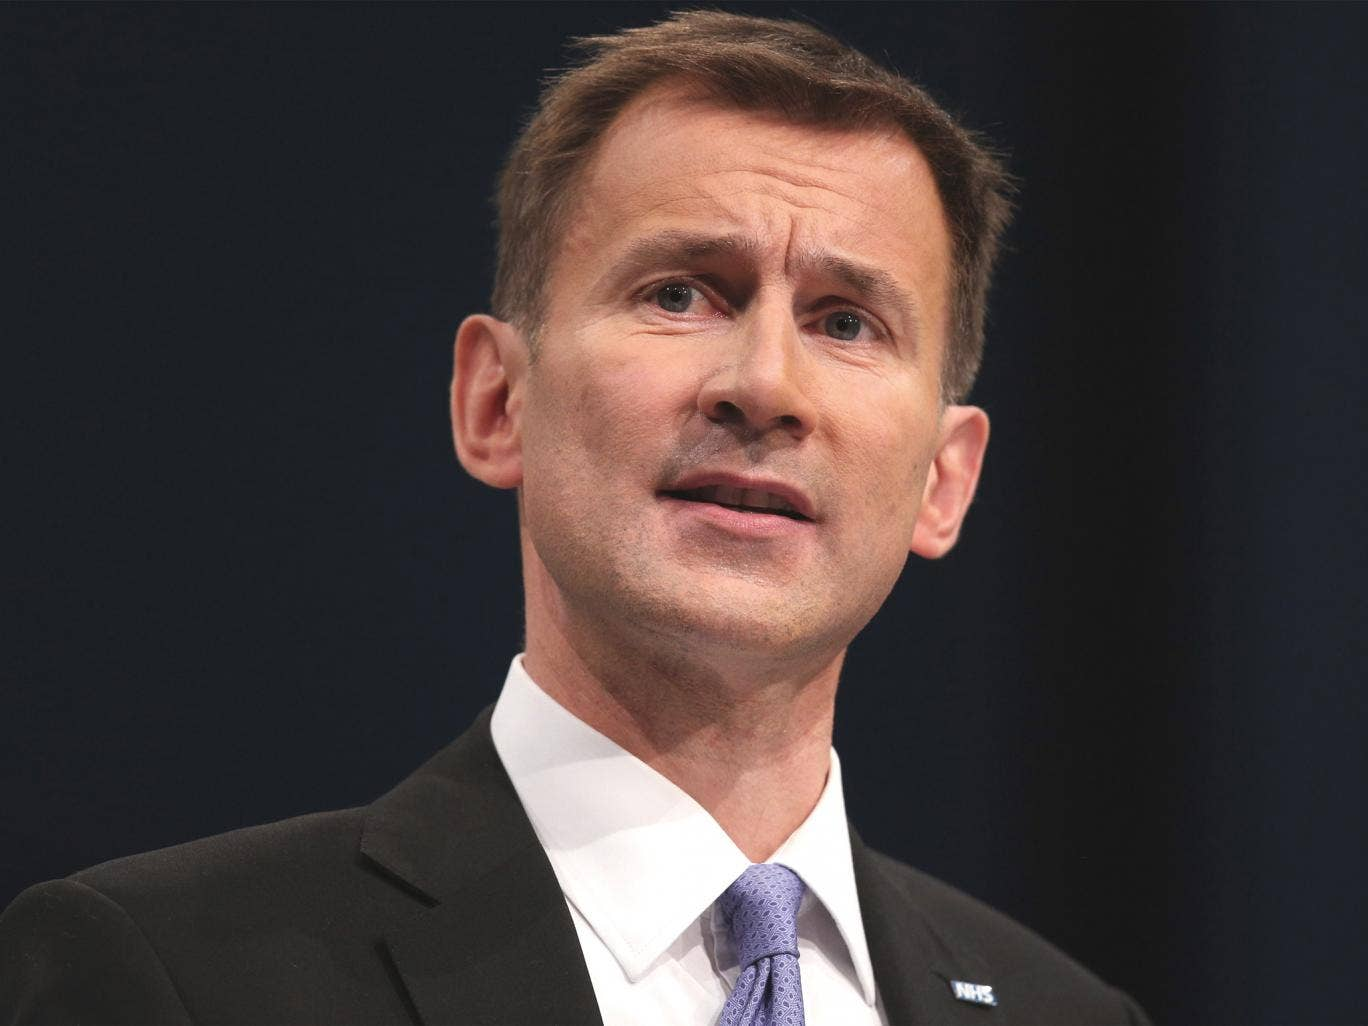 Jeremy Hunt says 6,000 lives a year could be saved by reducing medical errors